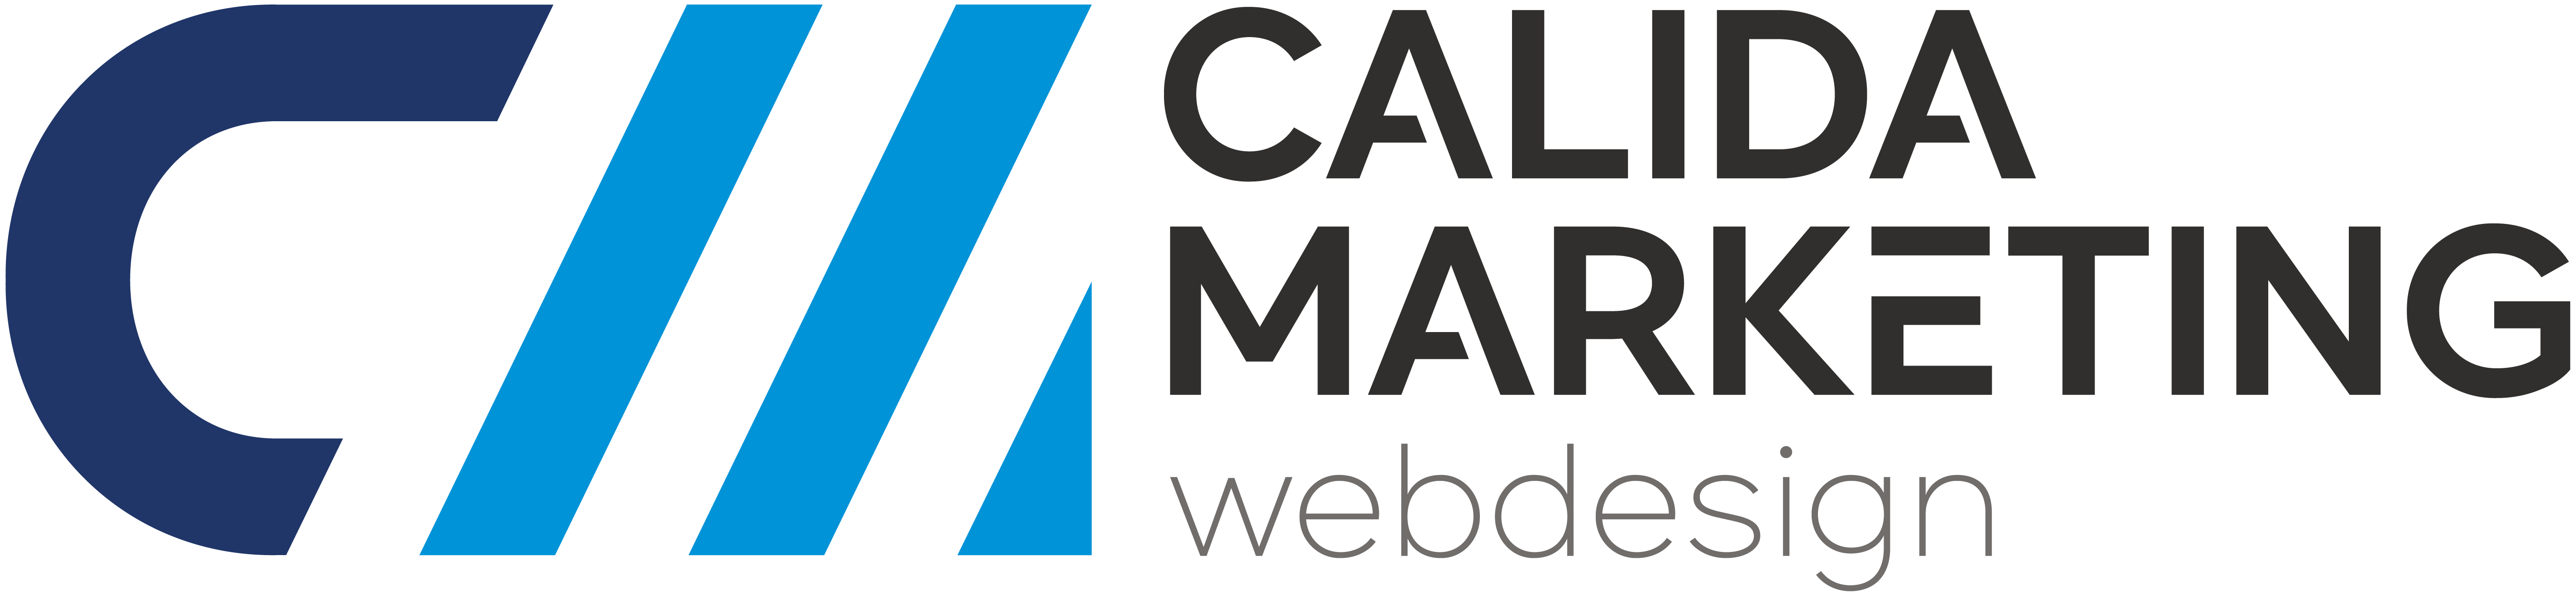 Calida Marketing webdesign